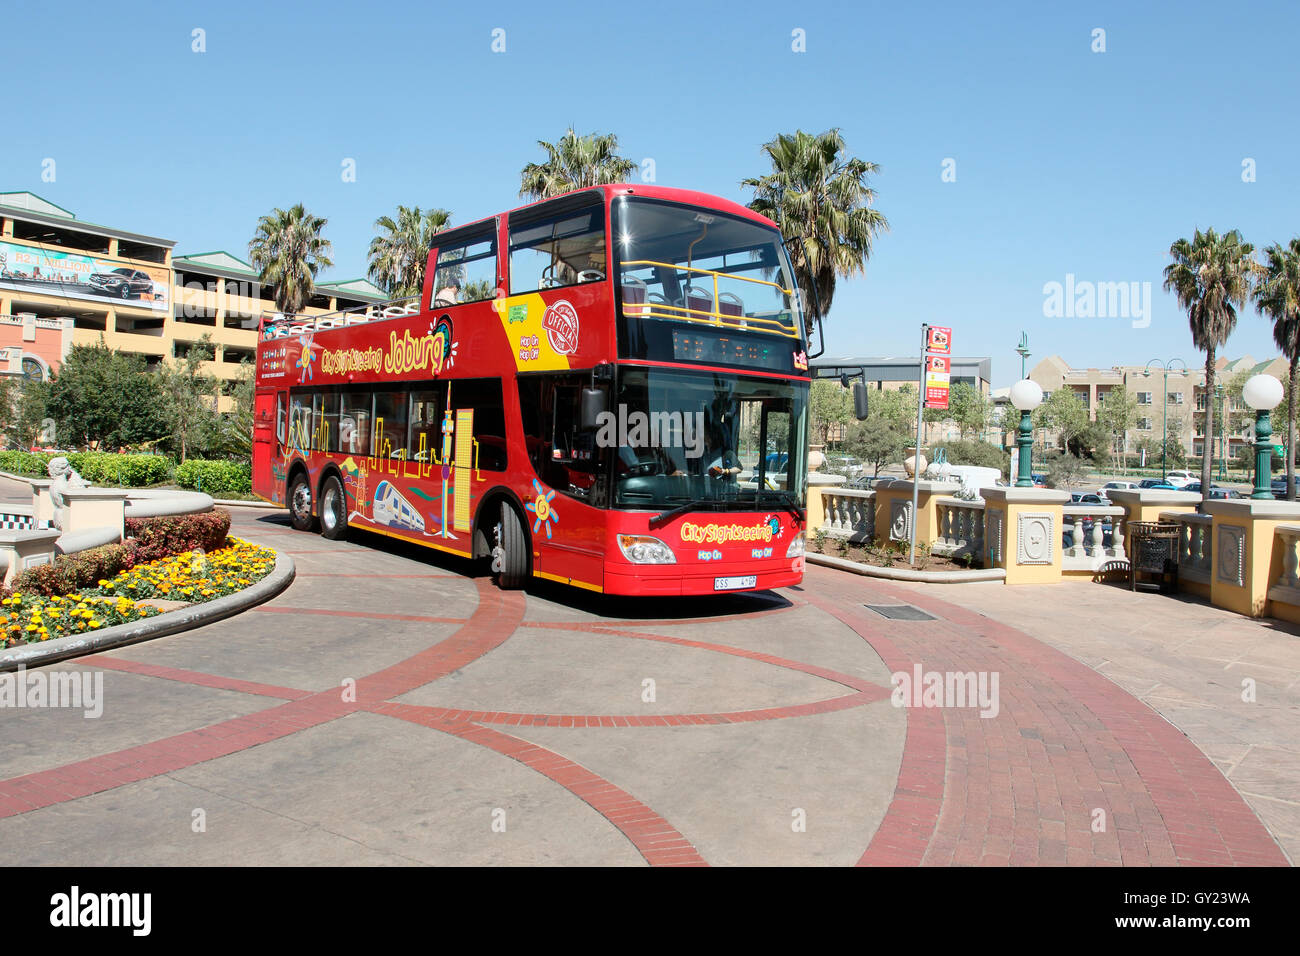 Sight seeing Touristenbus, Johannesburg, Südafrika, August 2016 Stockbild